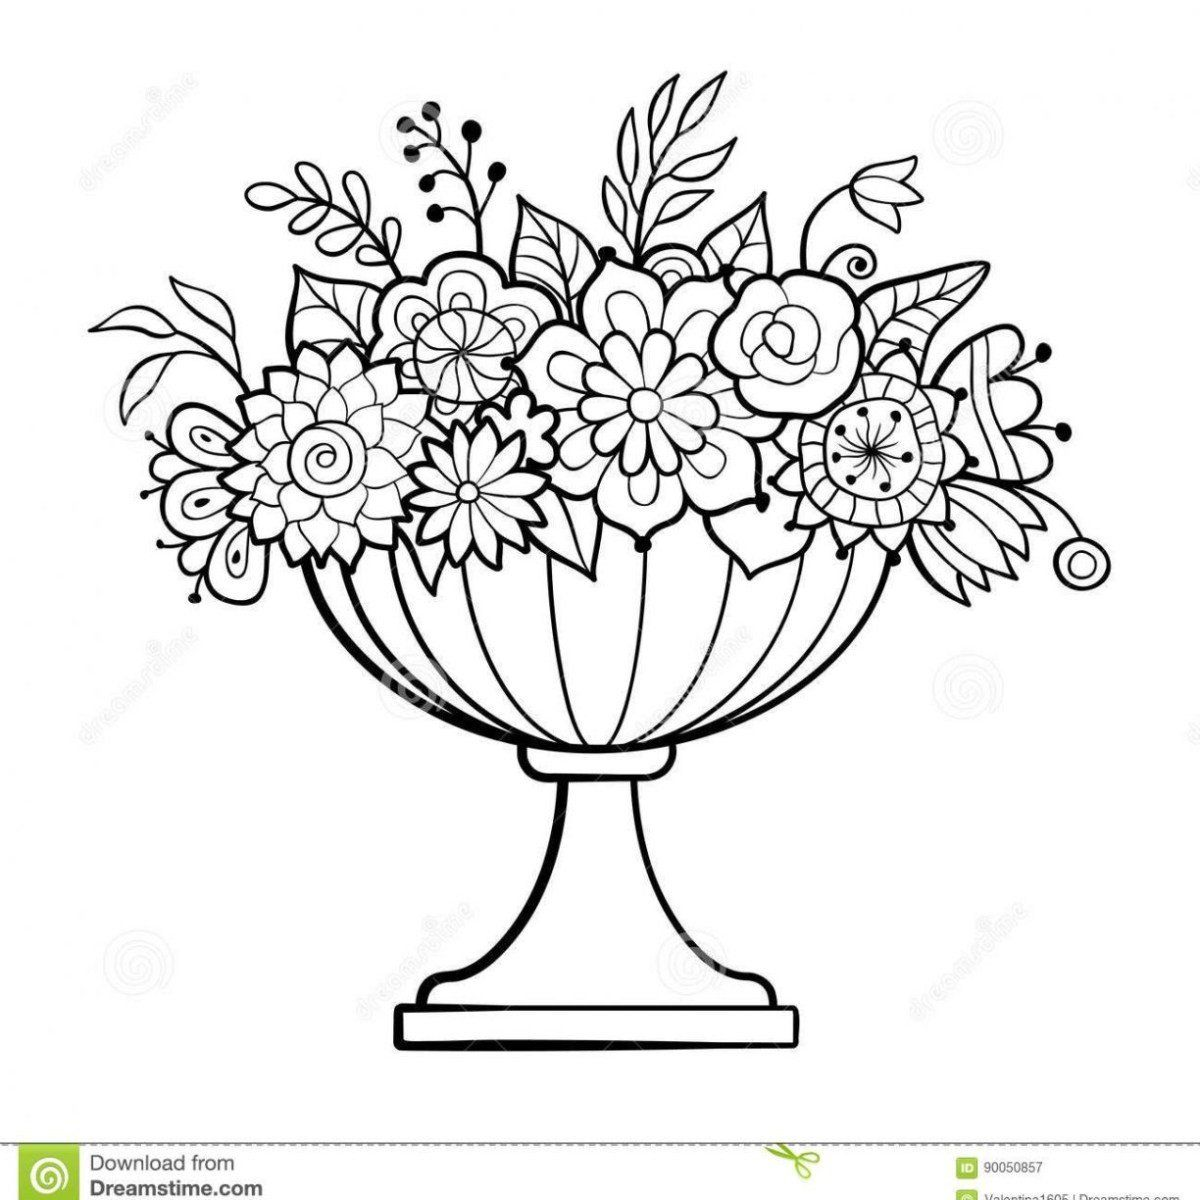 Flower Pot Coloring Page Printable Flower Pot Coloring Page Flower Pot Coloring Page In 2020 Flower Coloring Pages Bird Coloring Pages Printable Flower Coloring Pages